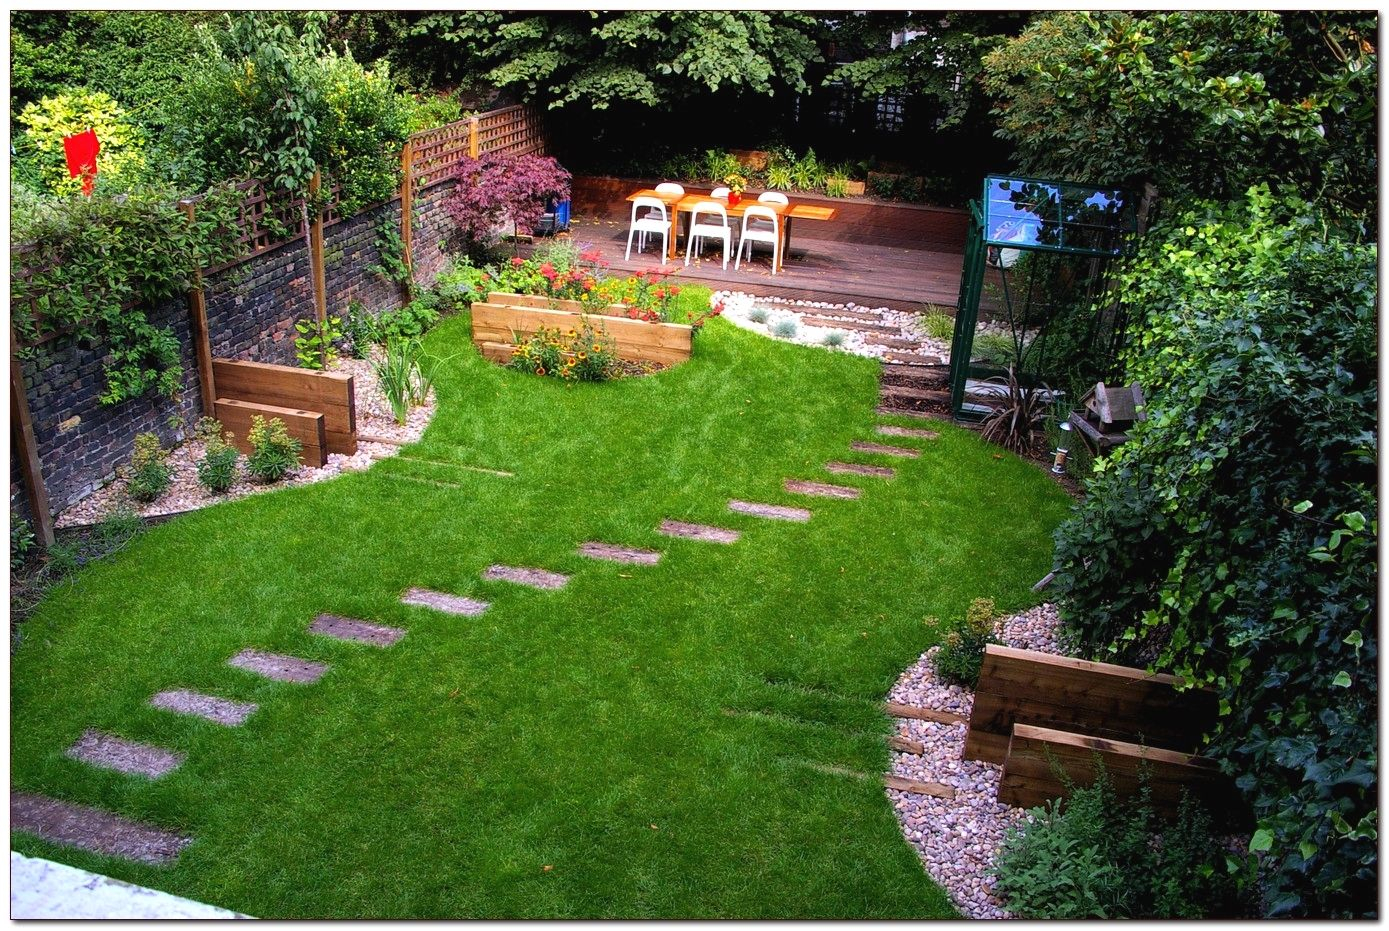 12 Creative Landscape Plans You Can Do Yourself For Your Yard inside 10 Some of the Coolest Ideas How to Make Small Backyard Landscape Plans